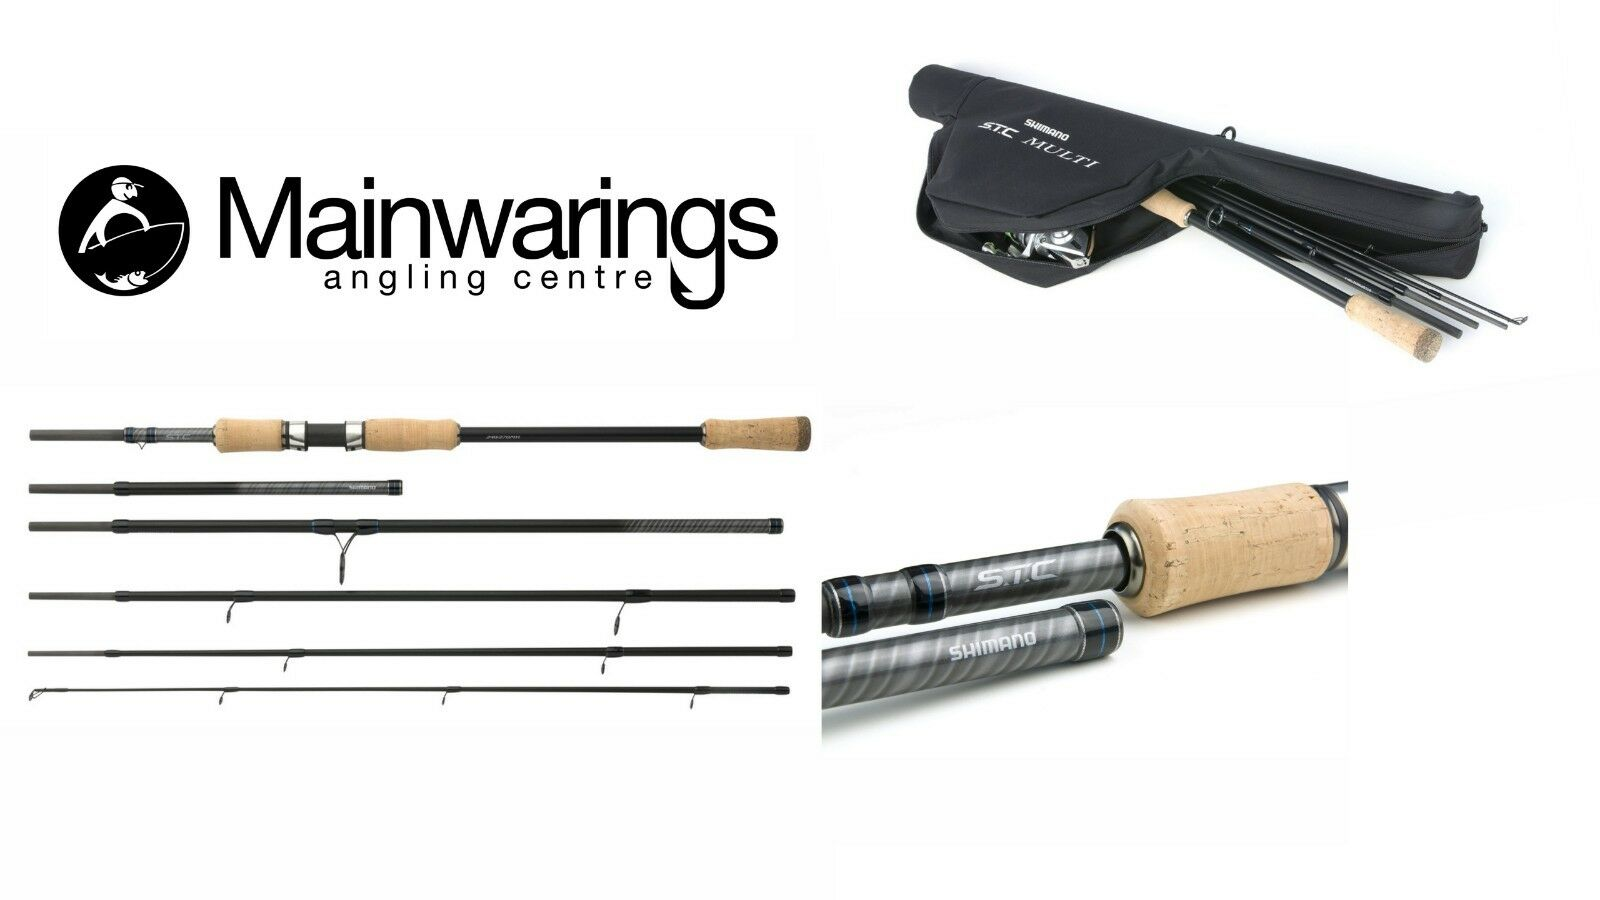 SHIMANO STC MULTI SPIN TRAVEL RODS - NEW 2019 MODELS